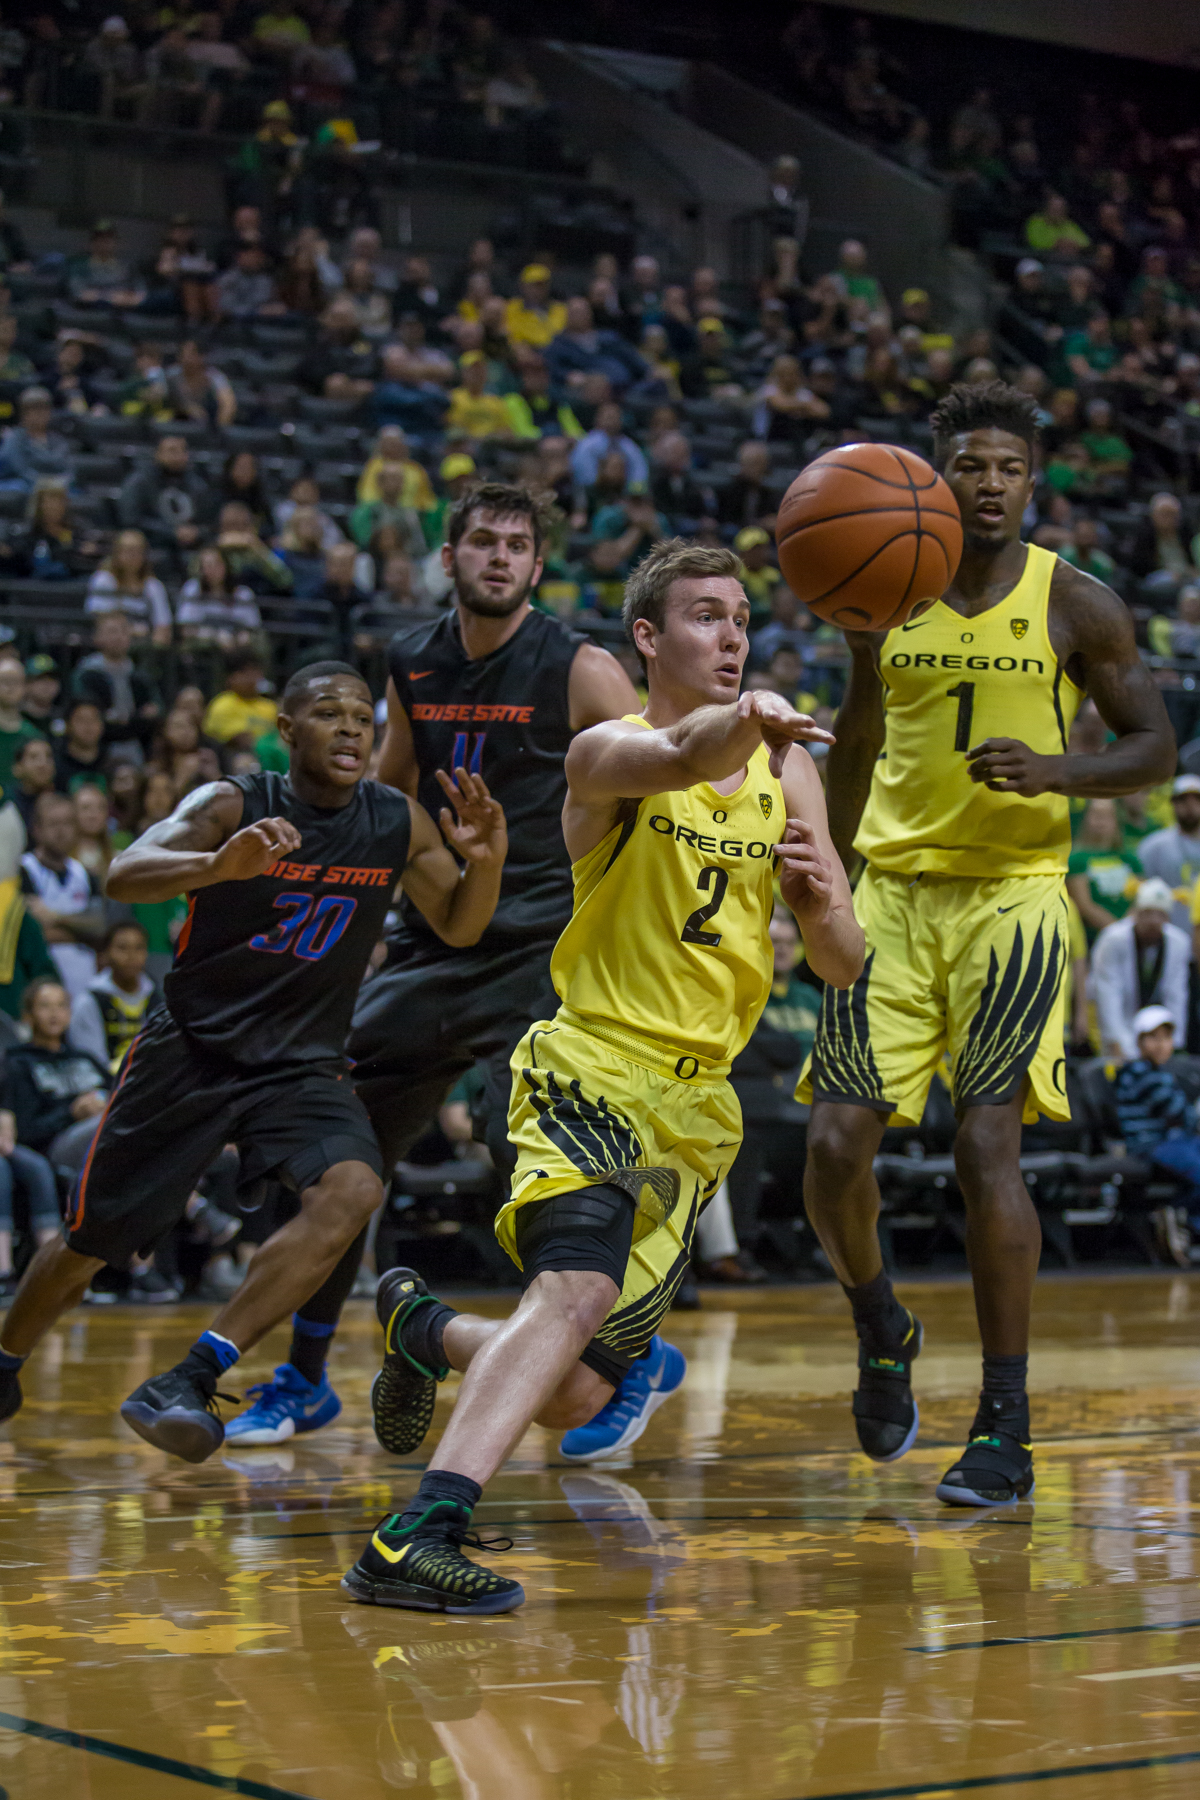 Oregon guard Casey Benson (#2) passes the ball across the court. After trailing for most of the game, the Oregon Ducks defeated the Boise State Broncos 68-63. Photo by Dillon Vibes